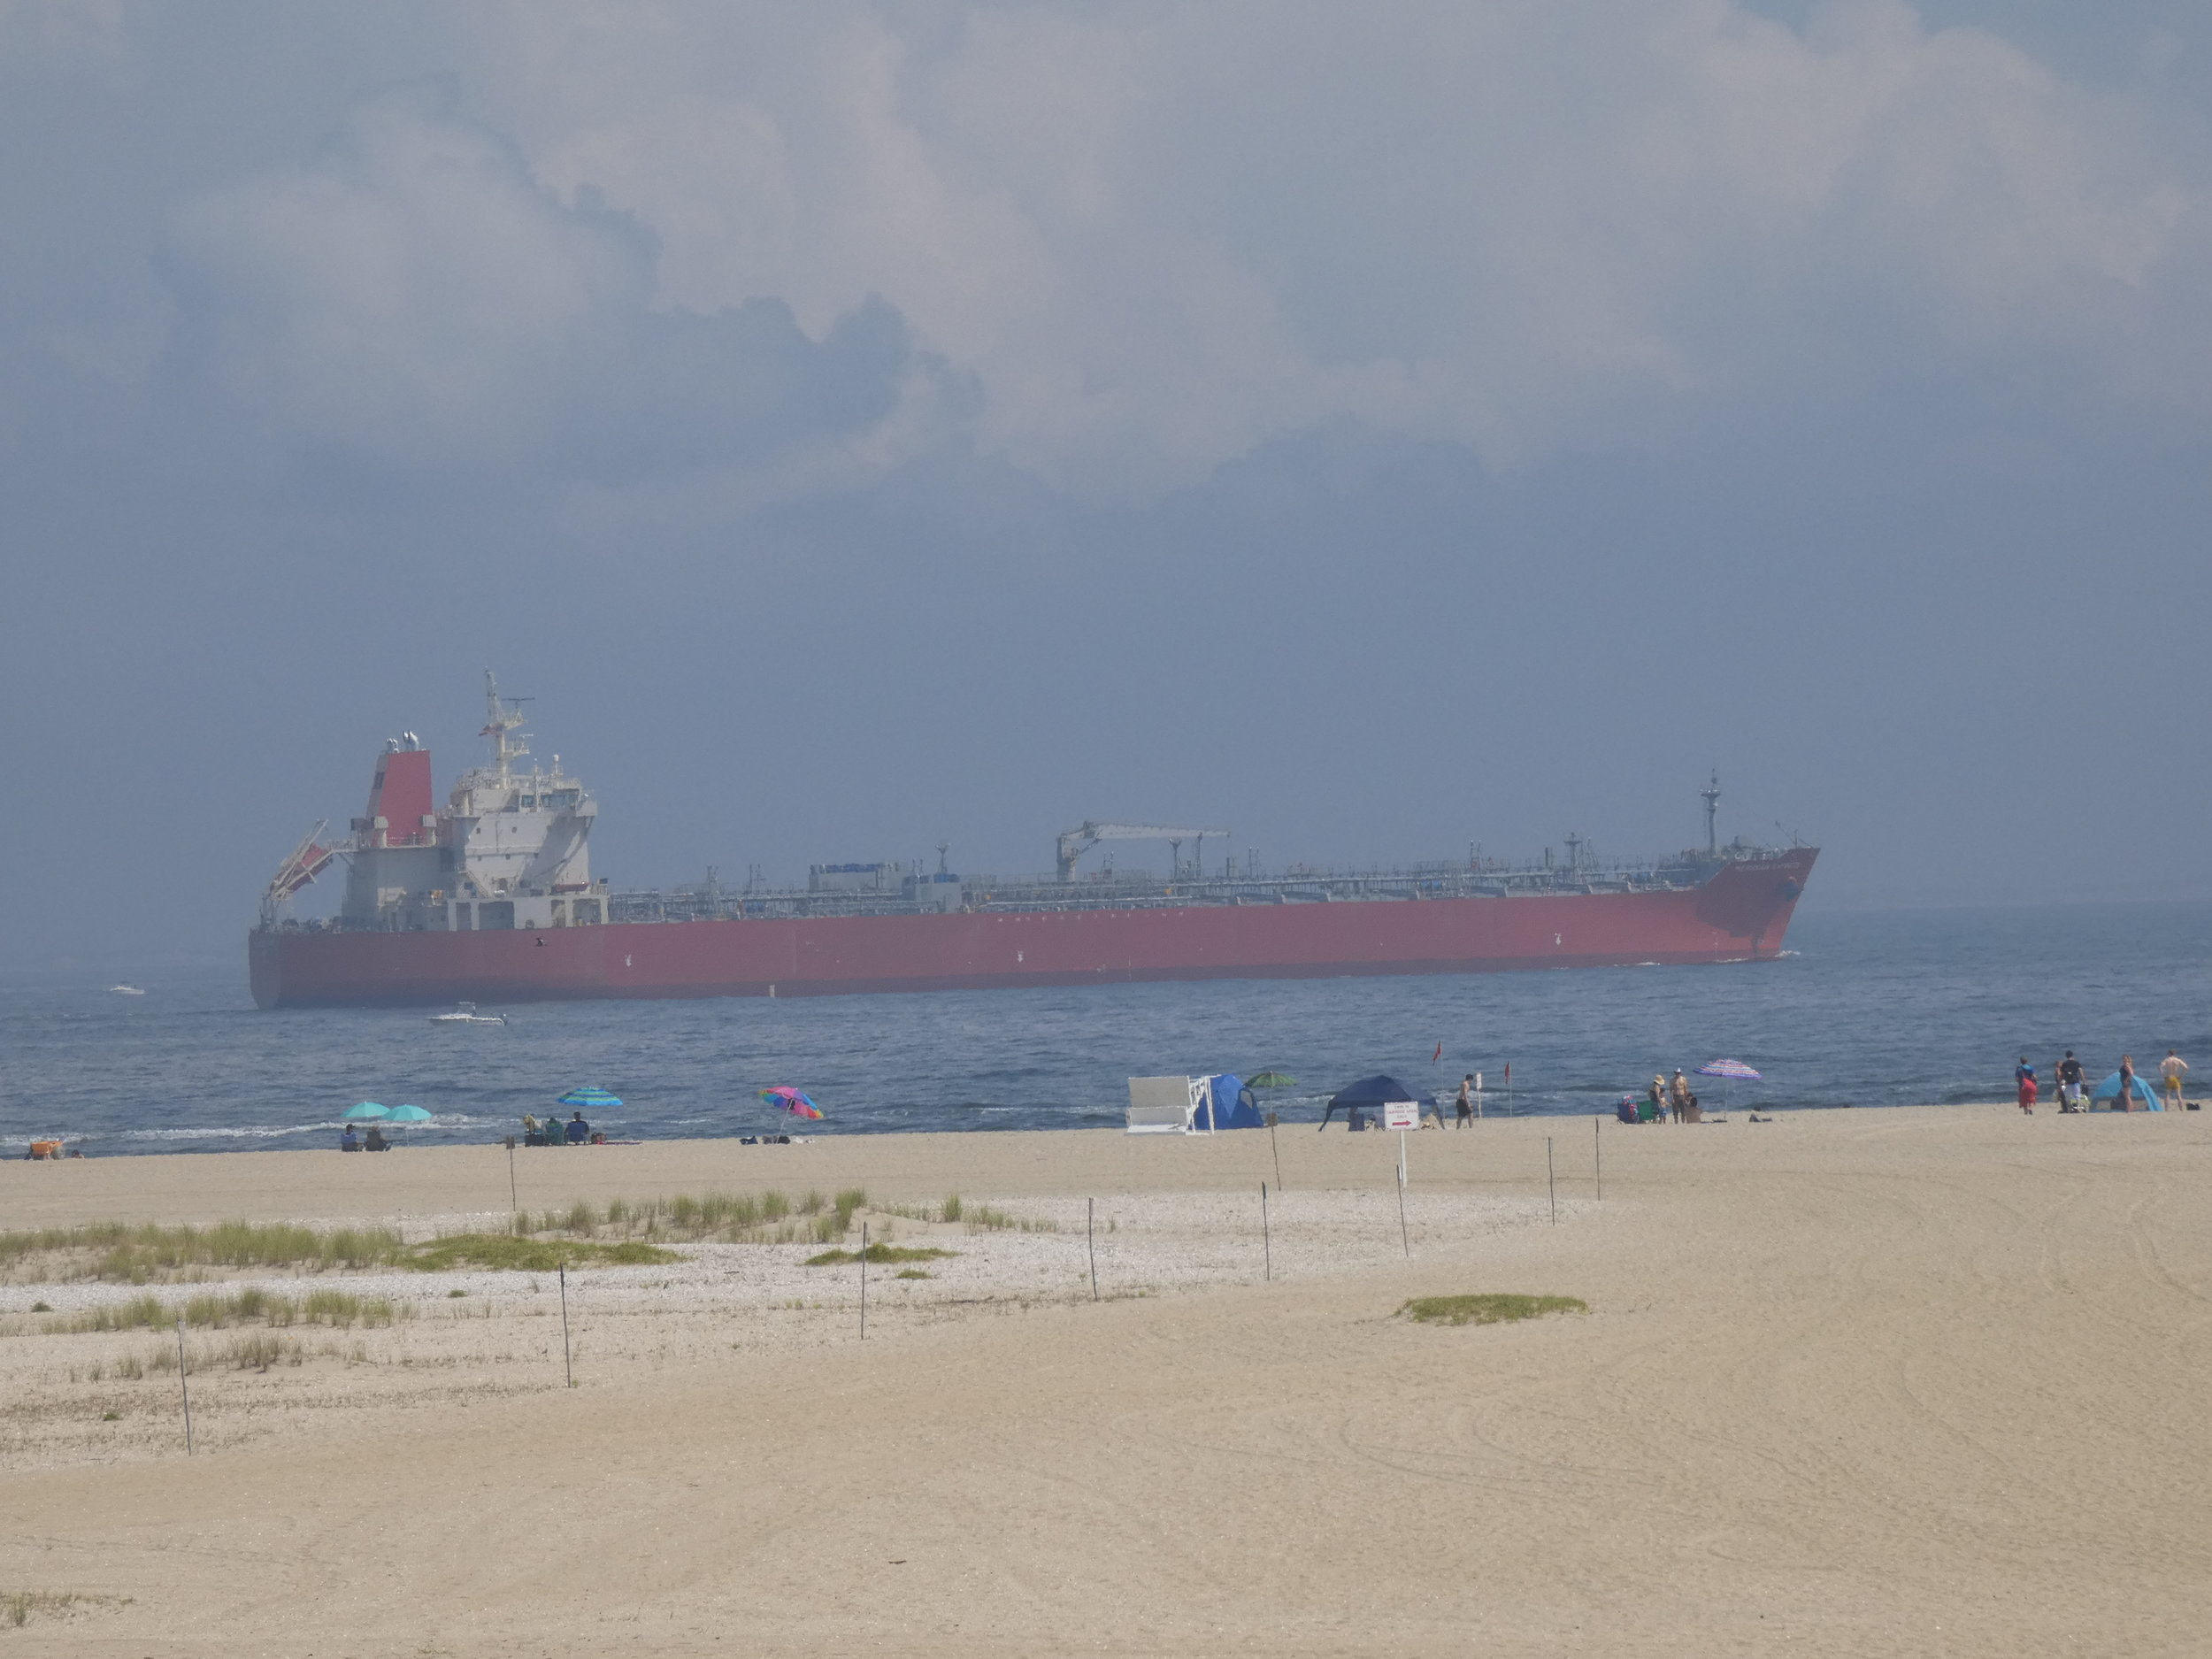 Commercial cargo ships and tankers can move very close to the coast where whales sometimes feed. This picture was taken at Sandy Hook, Gateway National Recreation Area, North Beach, at the entrance to New York Harbor during August 2019.